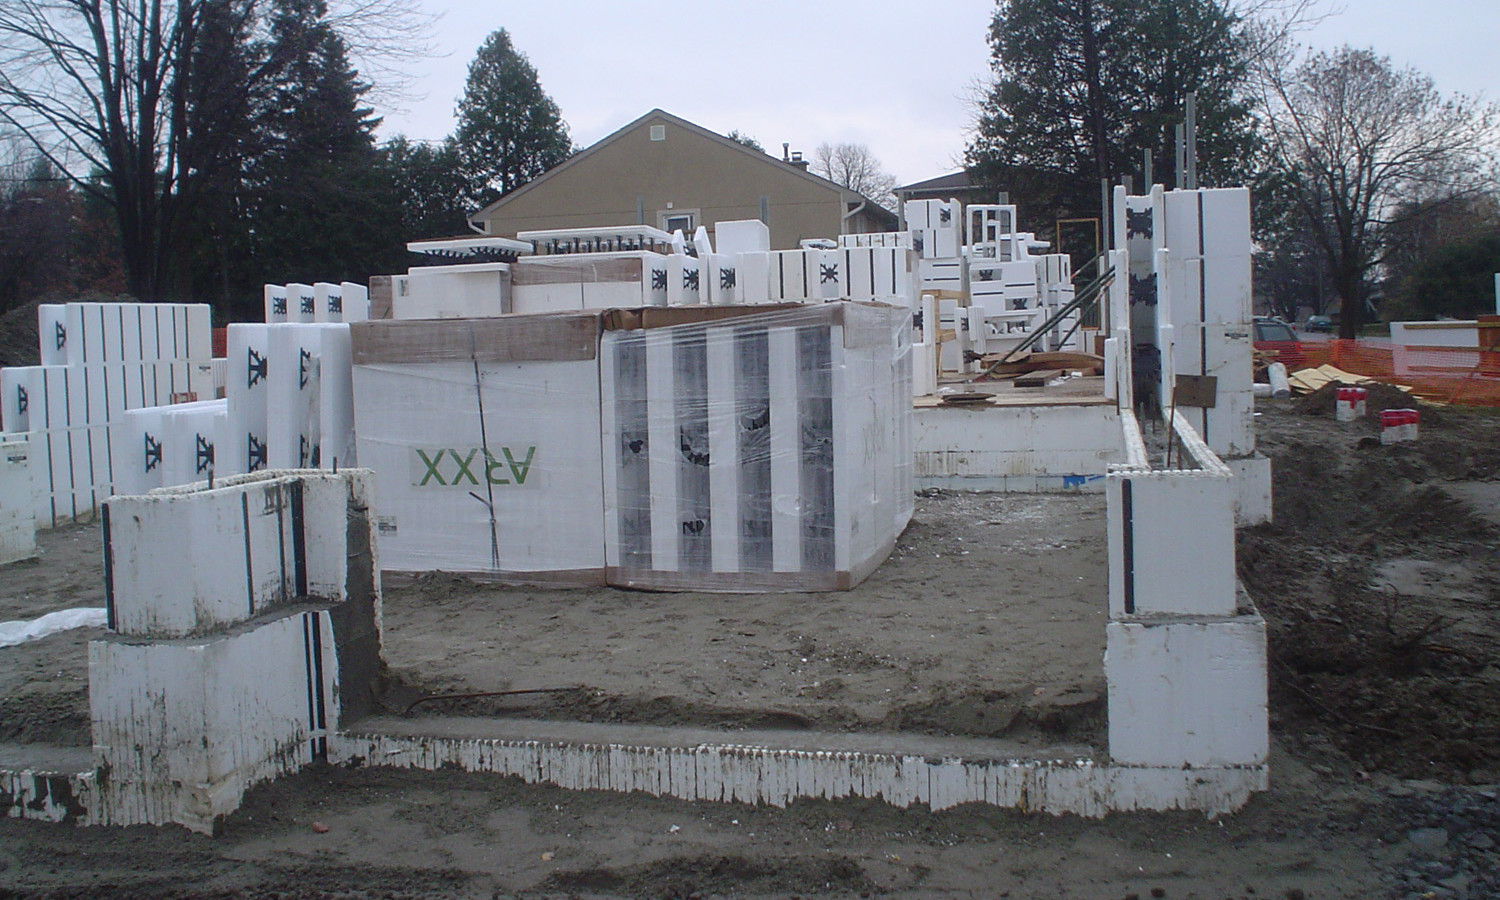 Construction Image of South Side of House